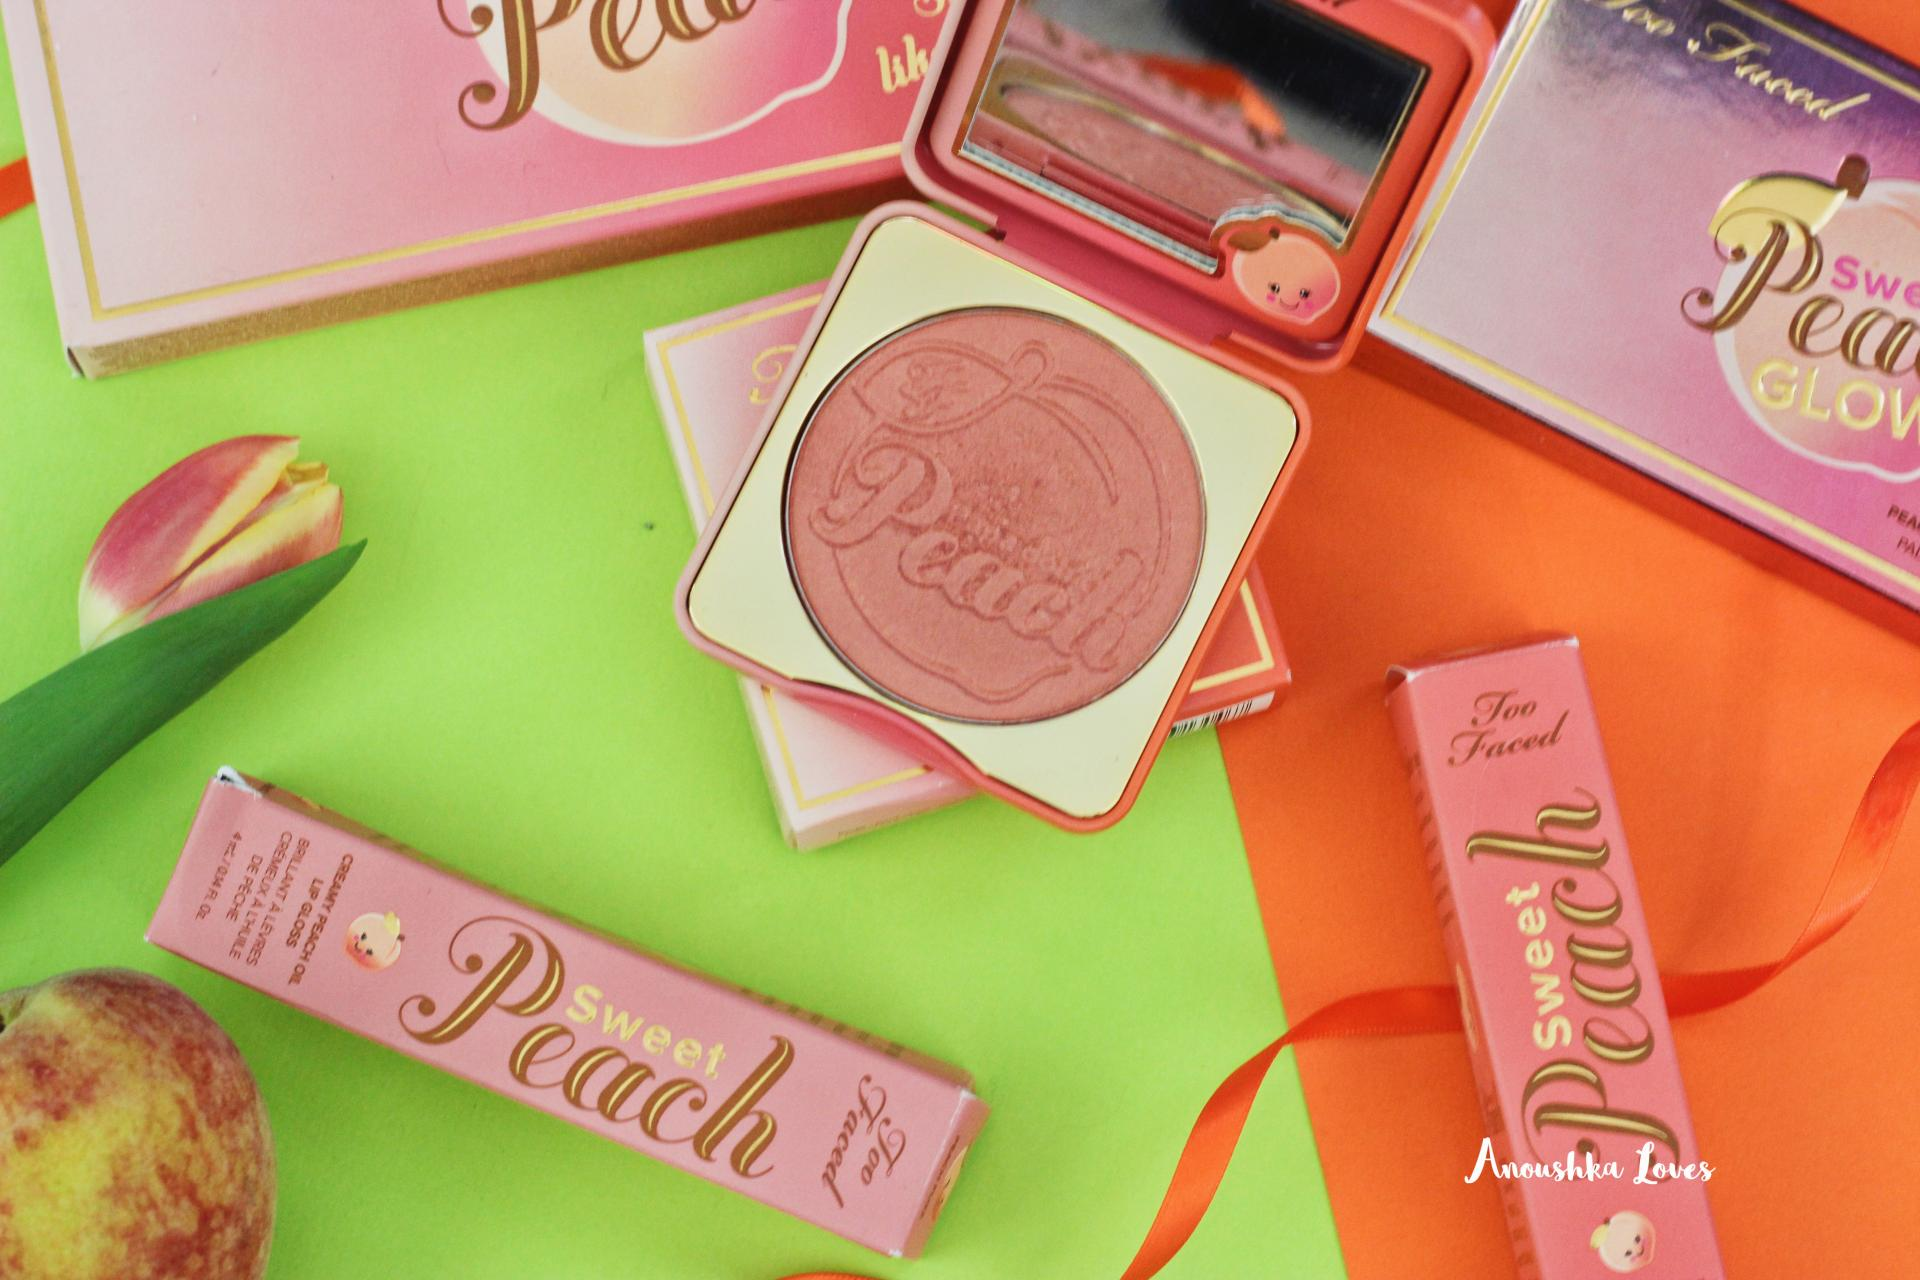 The Ultimate Too Faced Sweet Peach Collection Guide  Sweet Peach Papa don't Peach Blush